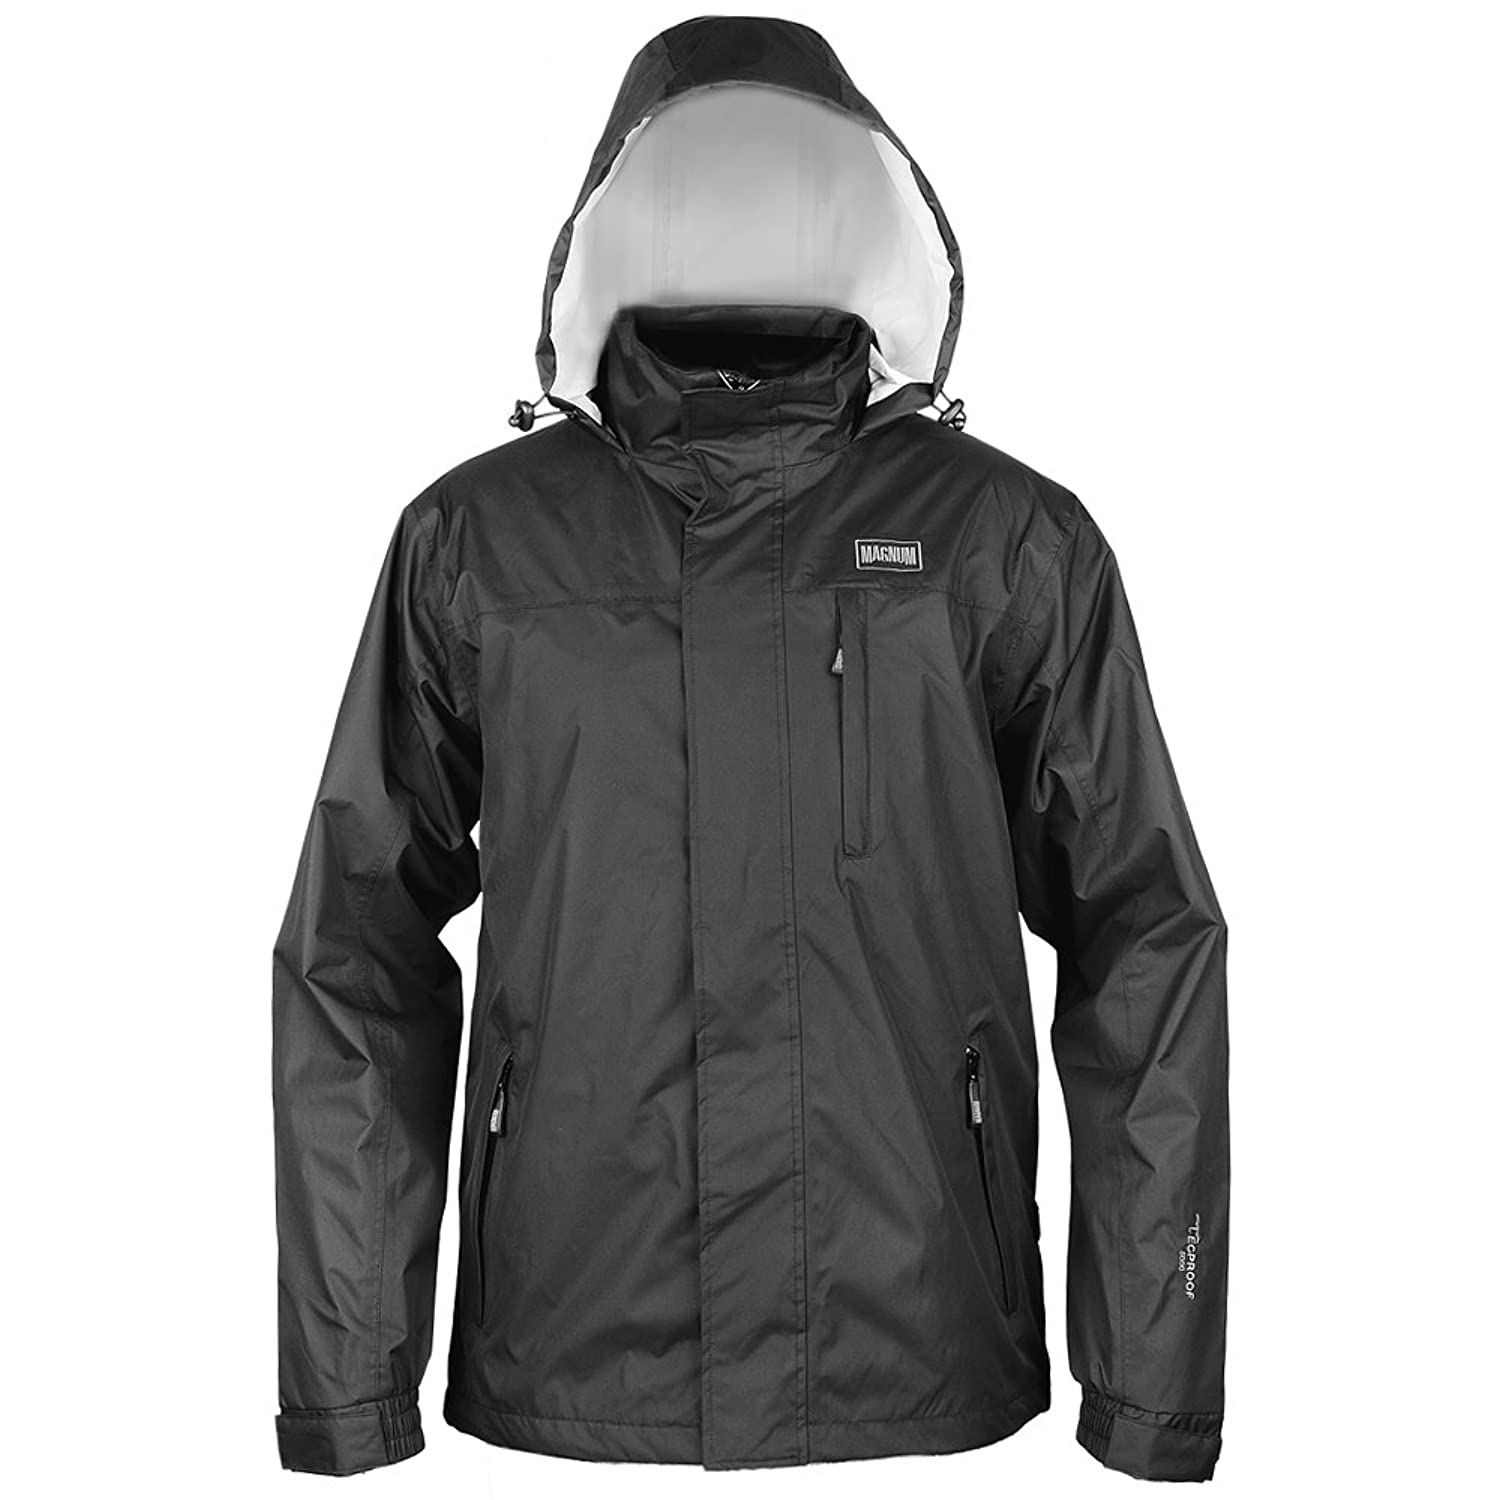 Mens Magnum Dragon Waterproof and Breathable Lightweight Black Jacket Sizes Small - XXX Large